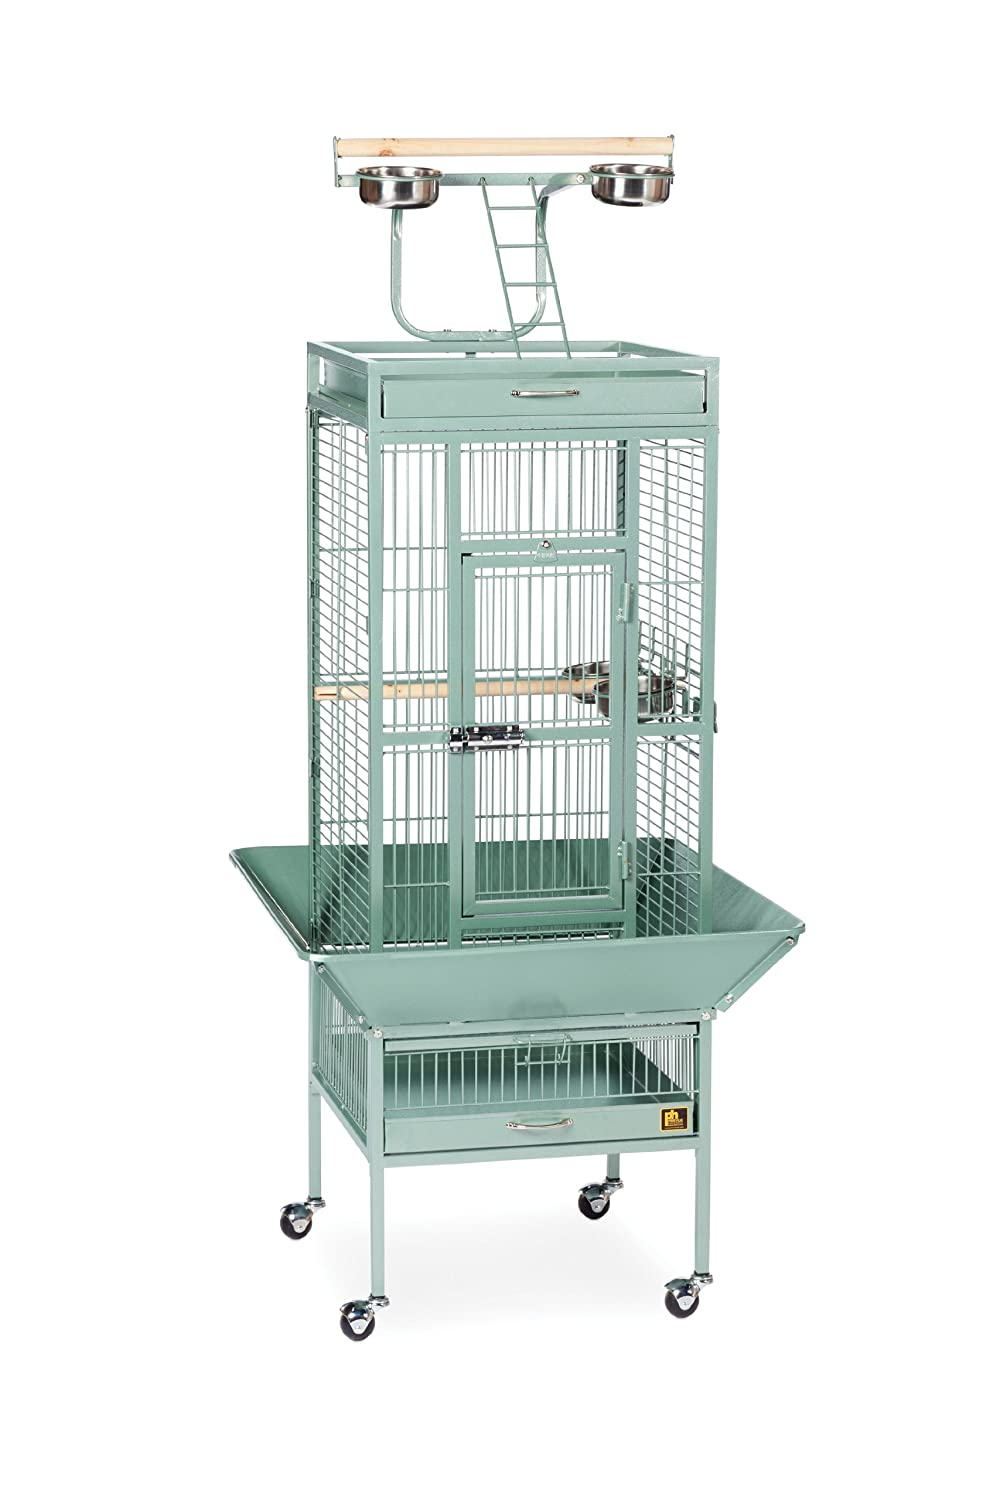 18-Inch by 18-Inch by 57-Inch Prevue Pet Products Wrought Iron Select Bird Cage, 18-Inch by 18-Inch by 57-Inch, Cobalt bluee